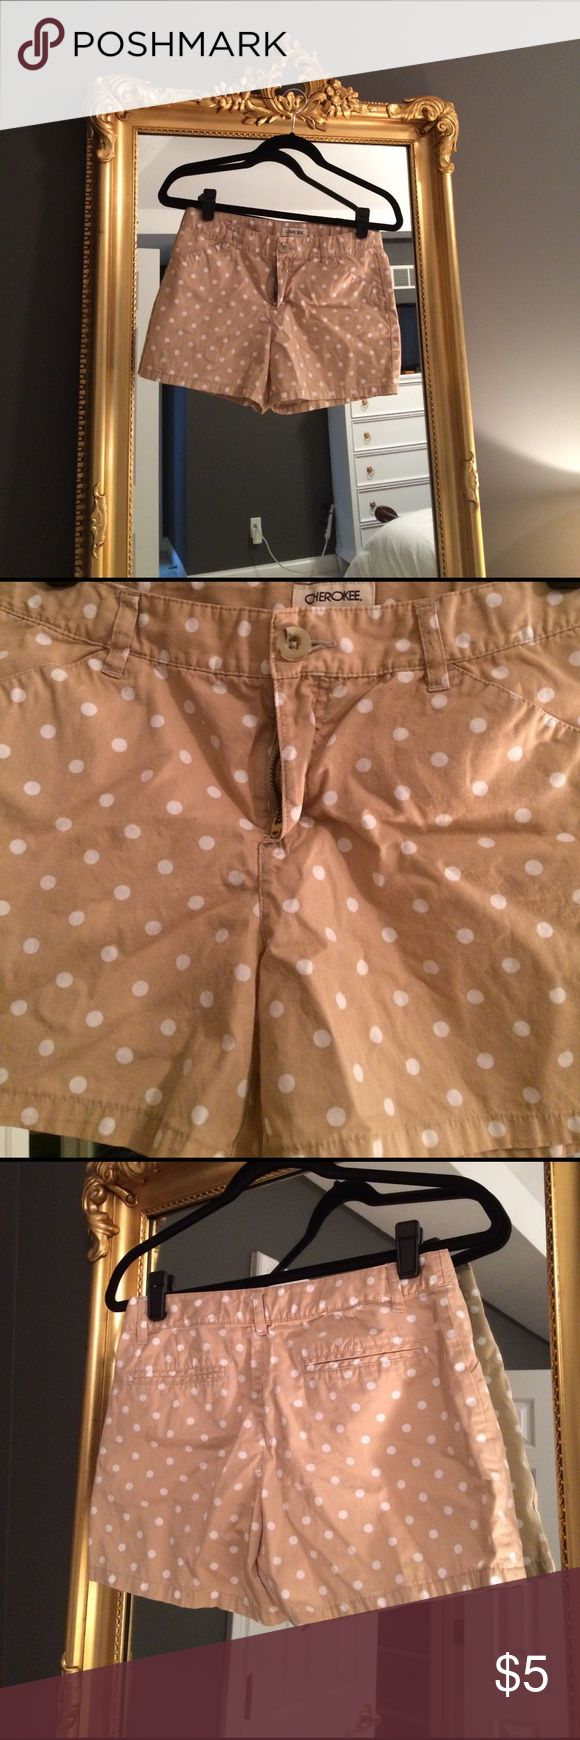 Cherokee girls polka dot shorts, xl 14-16. Adorable khaki and white polka dot shorts from Cherokee girls at Target. Even though from girls section, I wore. Very good condition! Girls xl 14-16. (I wore so fit women's 0, 00) Cherokee Bottoms Shorts